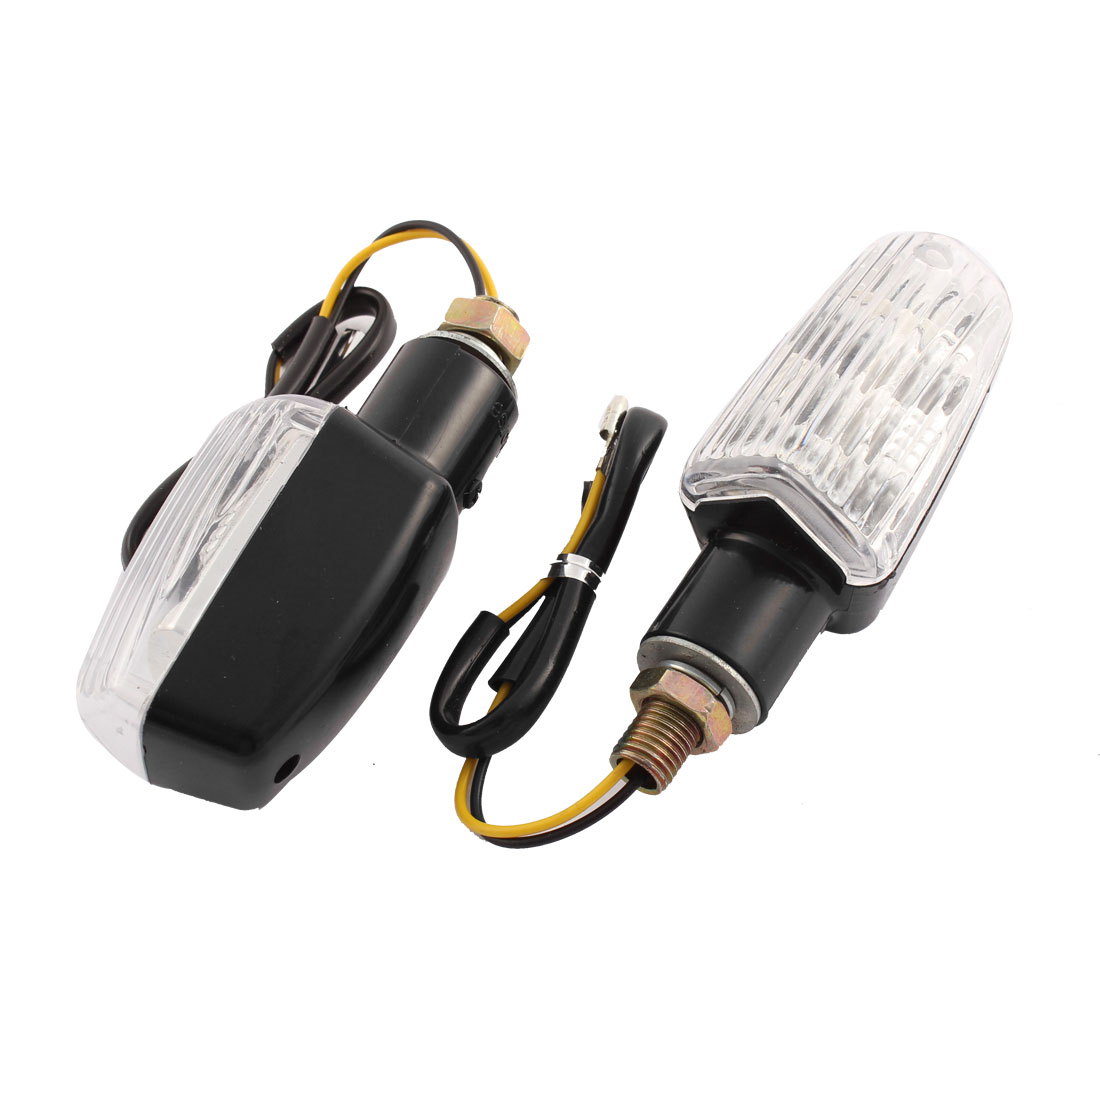 2 Pcs 9mm Thread Diameter White Turn Signal Light Indicator Lamps for Motorbike